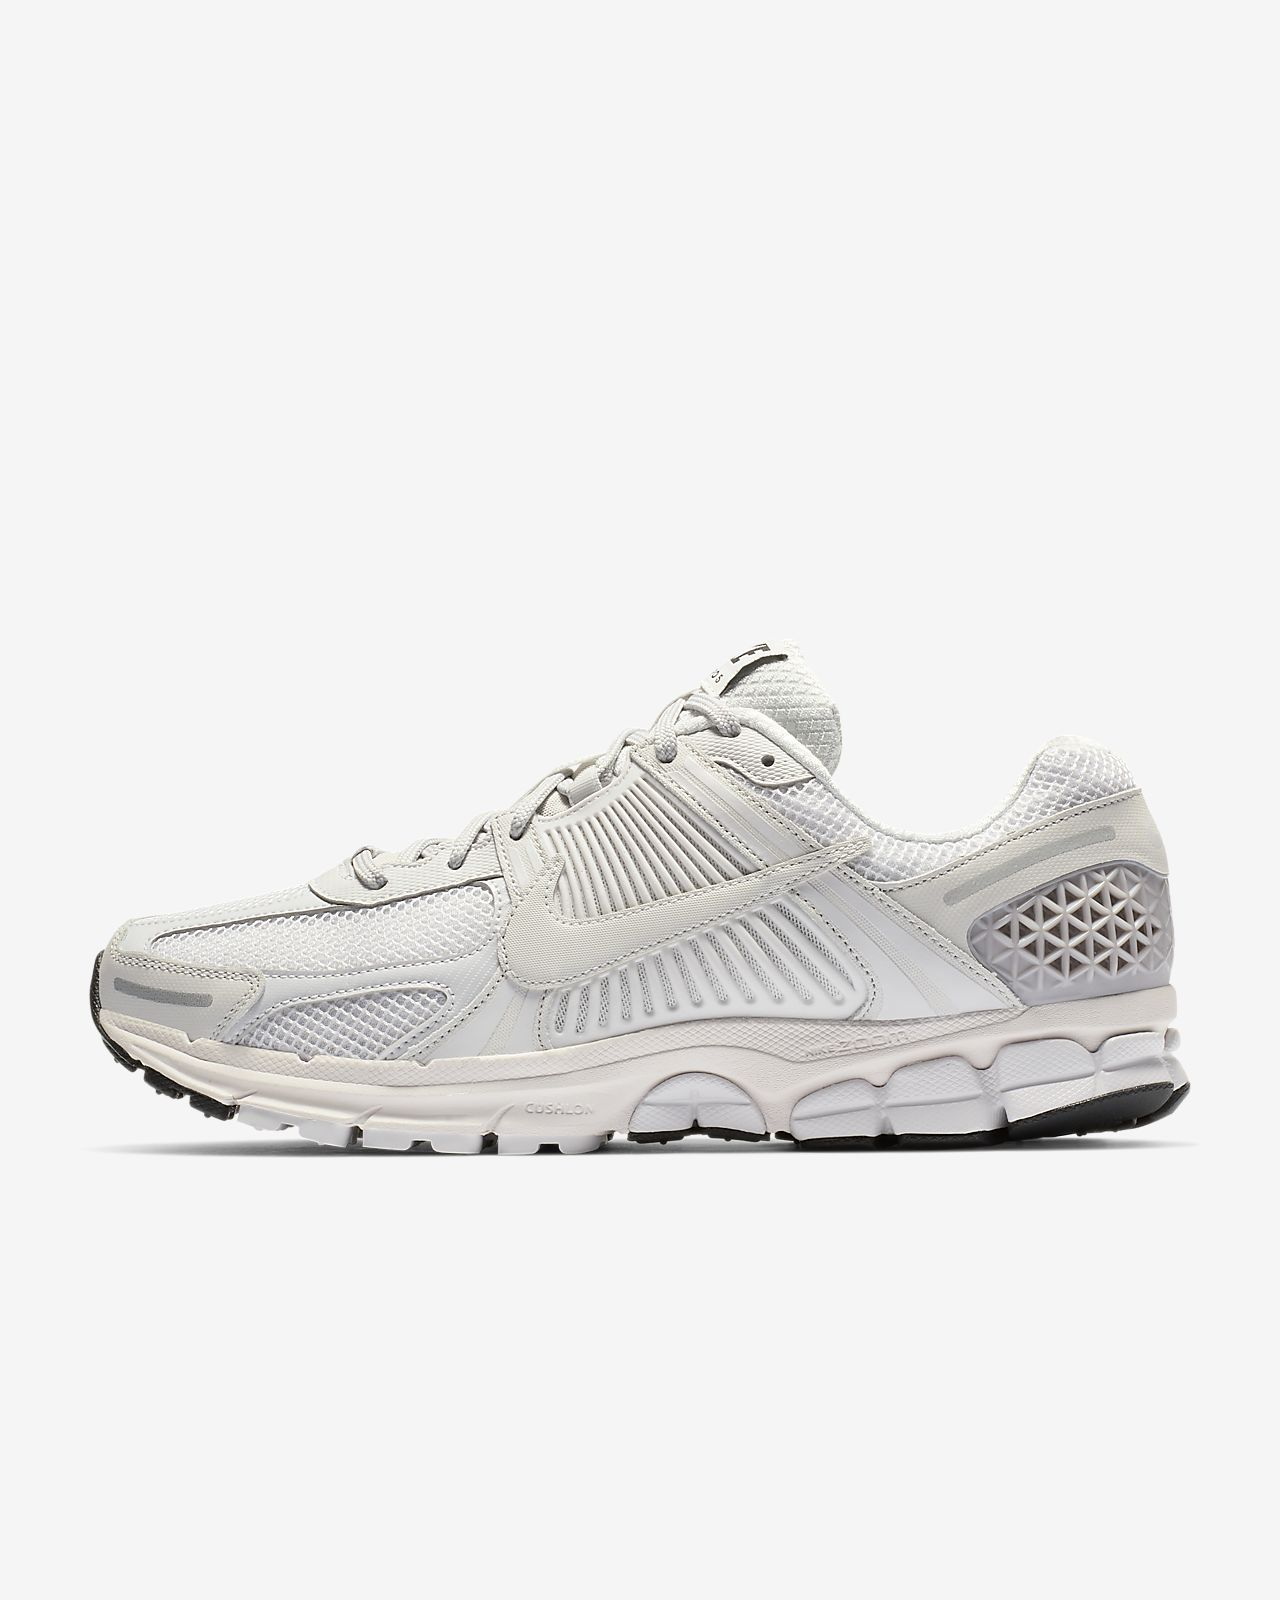 Sp HommeFr Chaussure Nike 5 Zoom Pour Vomero Ibe29YWHED